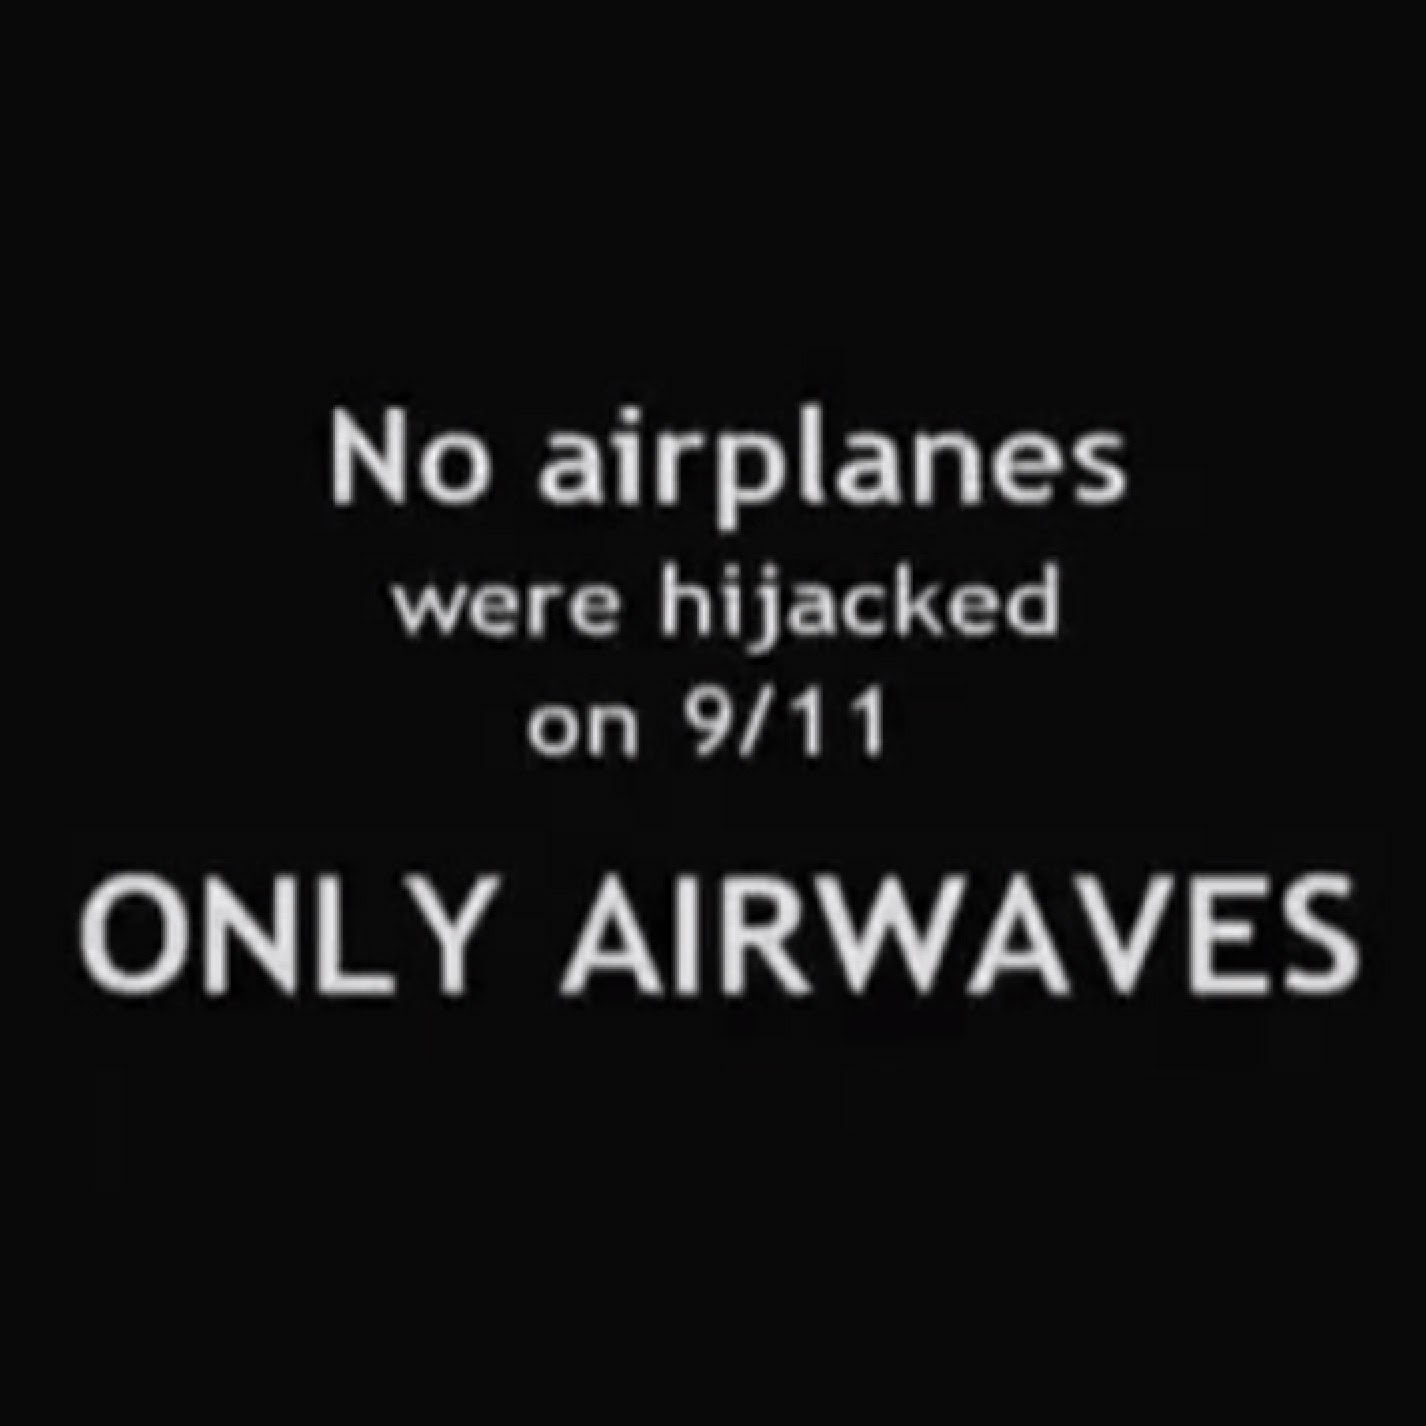 no airplanes were hijacked on 9/11 only airwaves